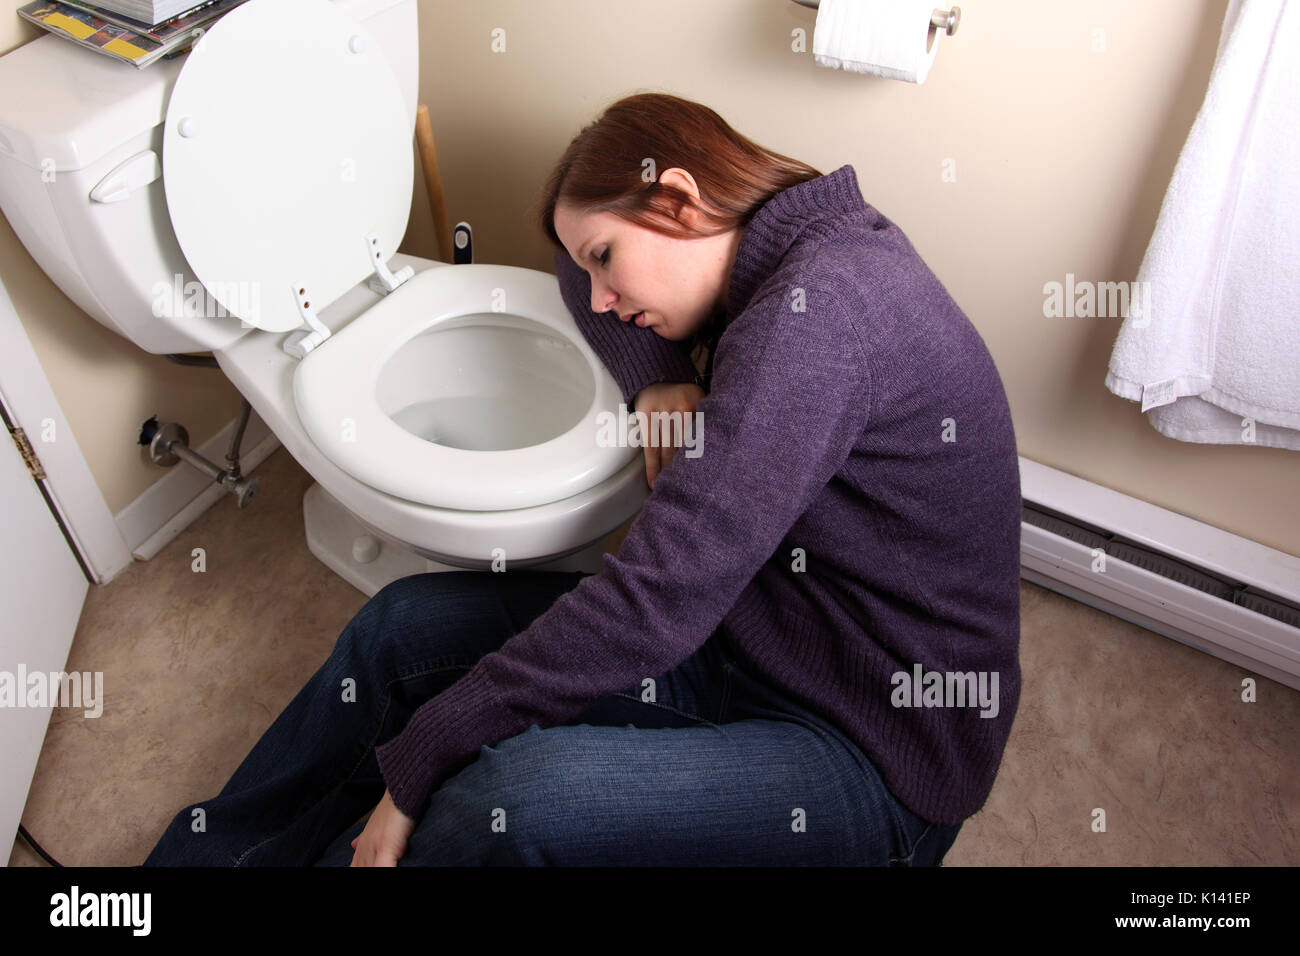 Young Woman Slumped Over Toilet Bowl